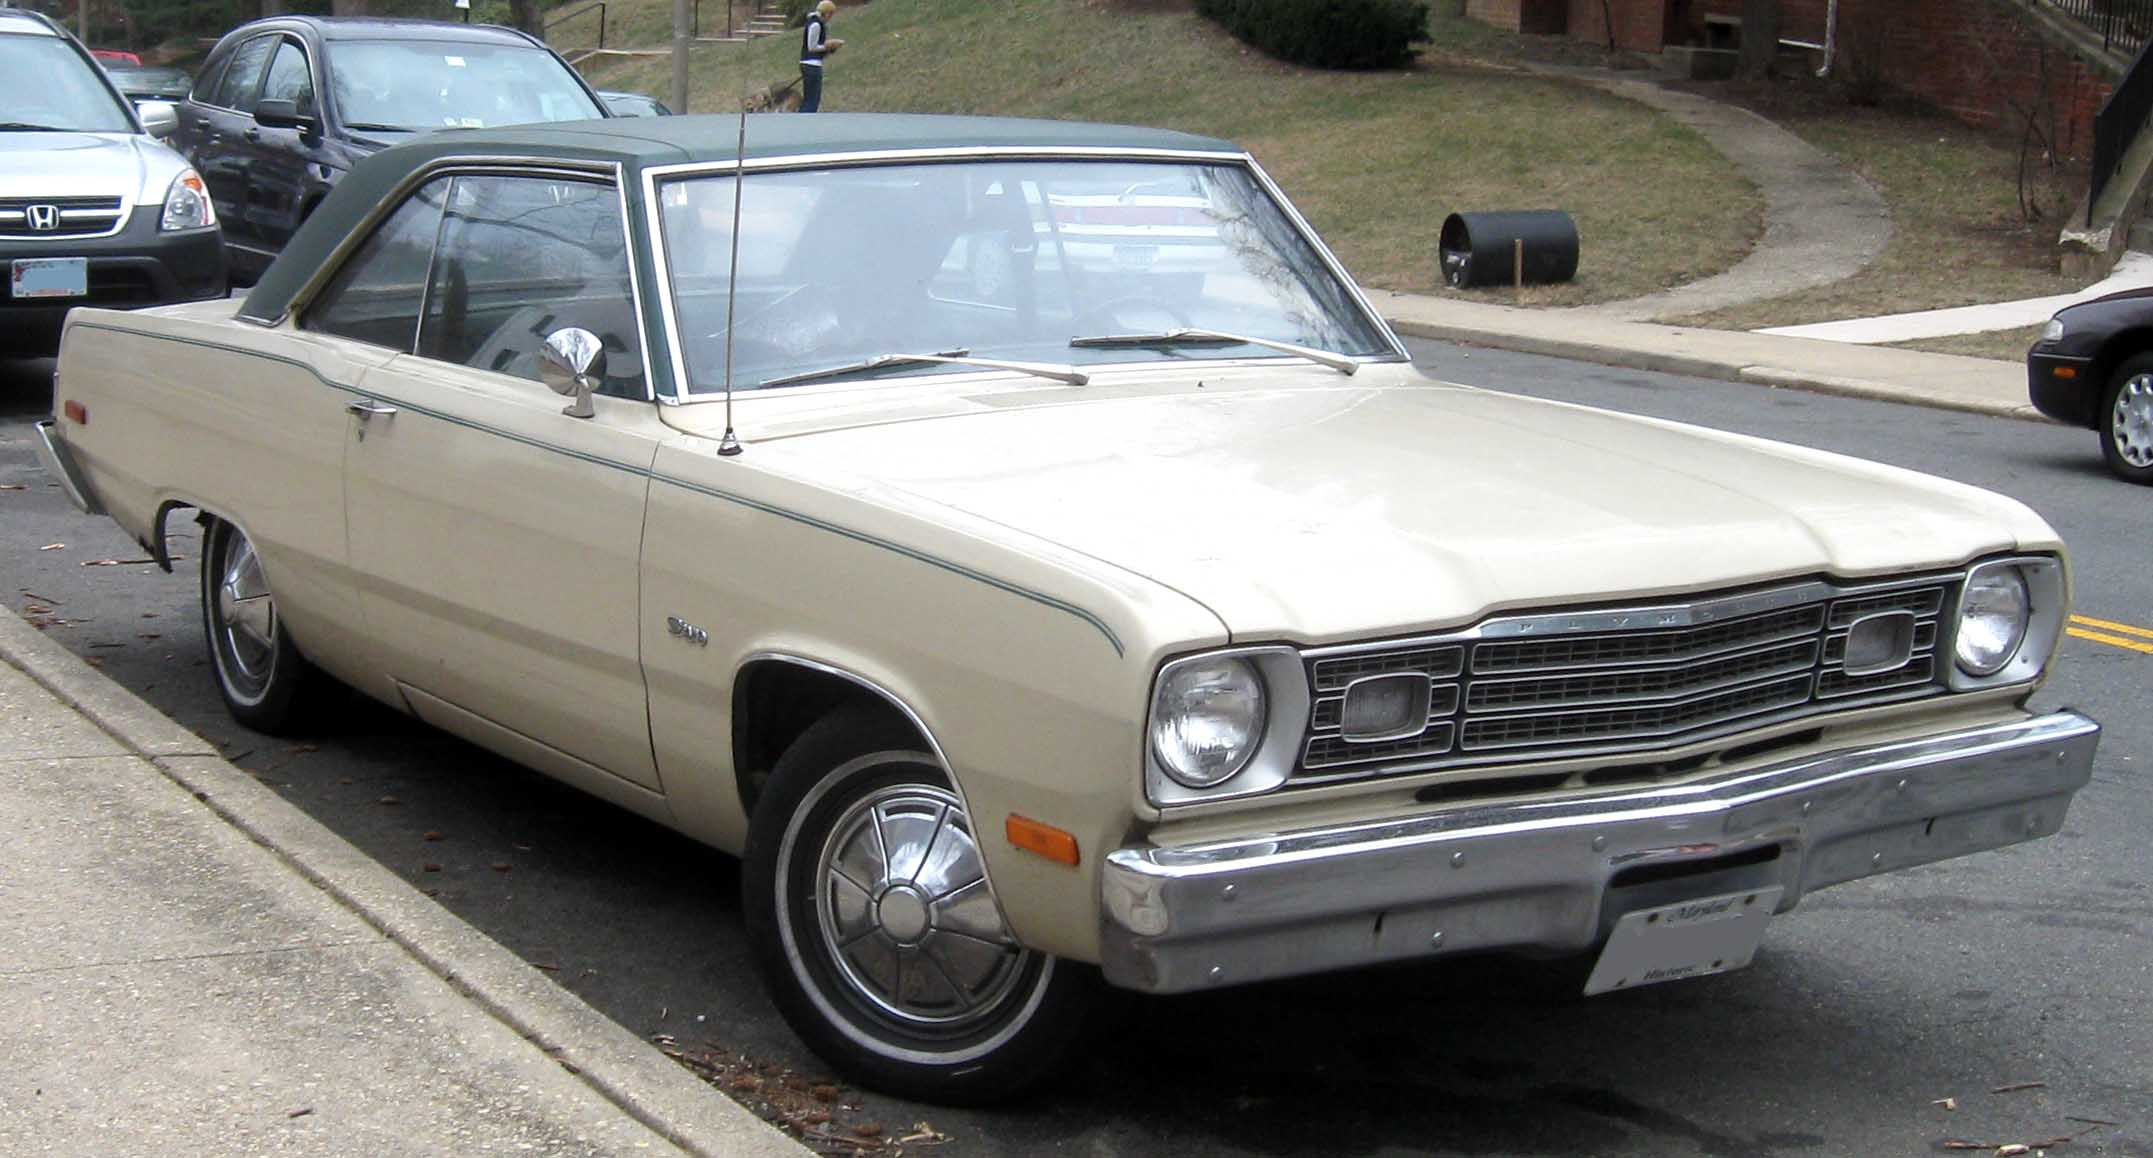 1976 Chrysler Valiant #12